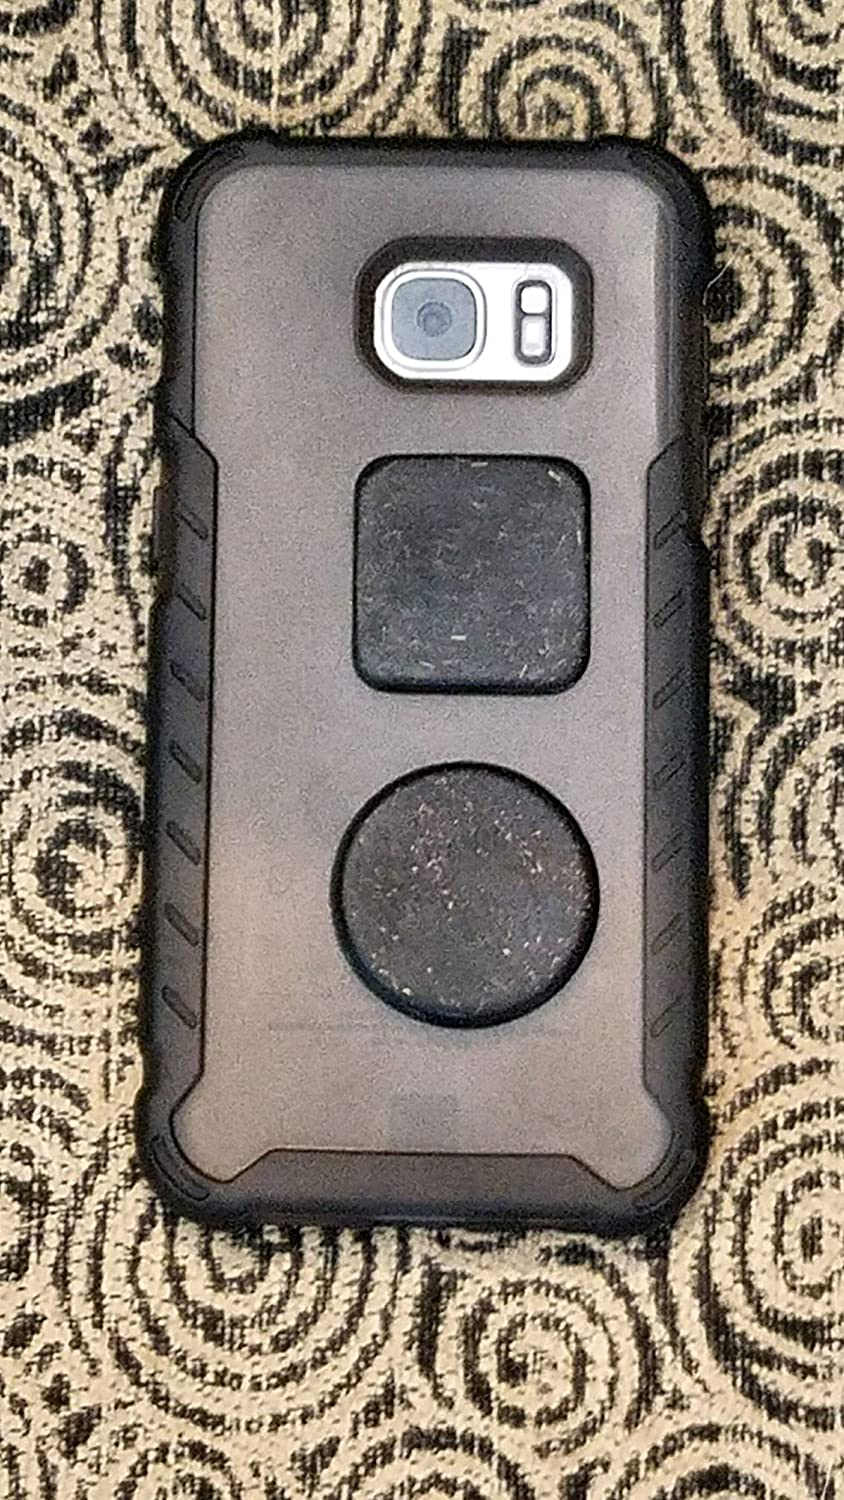 EMF Shield for Cell Phone Case - Orgonite Protection Sticker - Black Sun Orgone - 3 Small Squares and 1 Circle